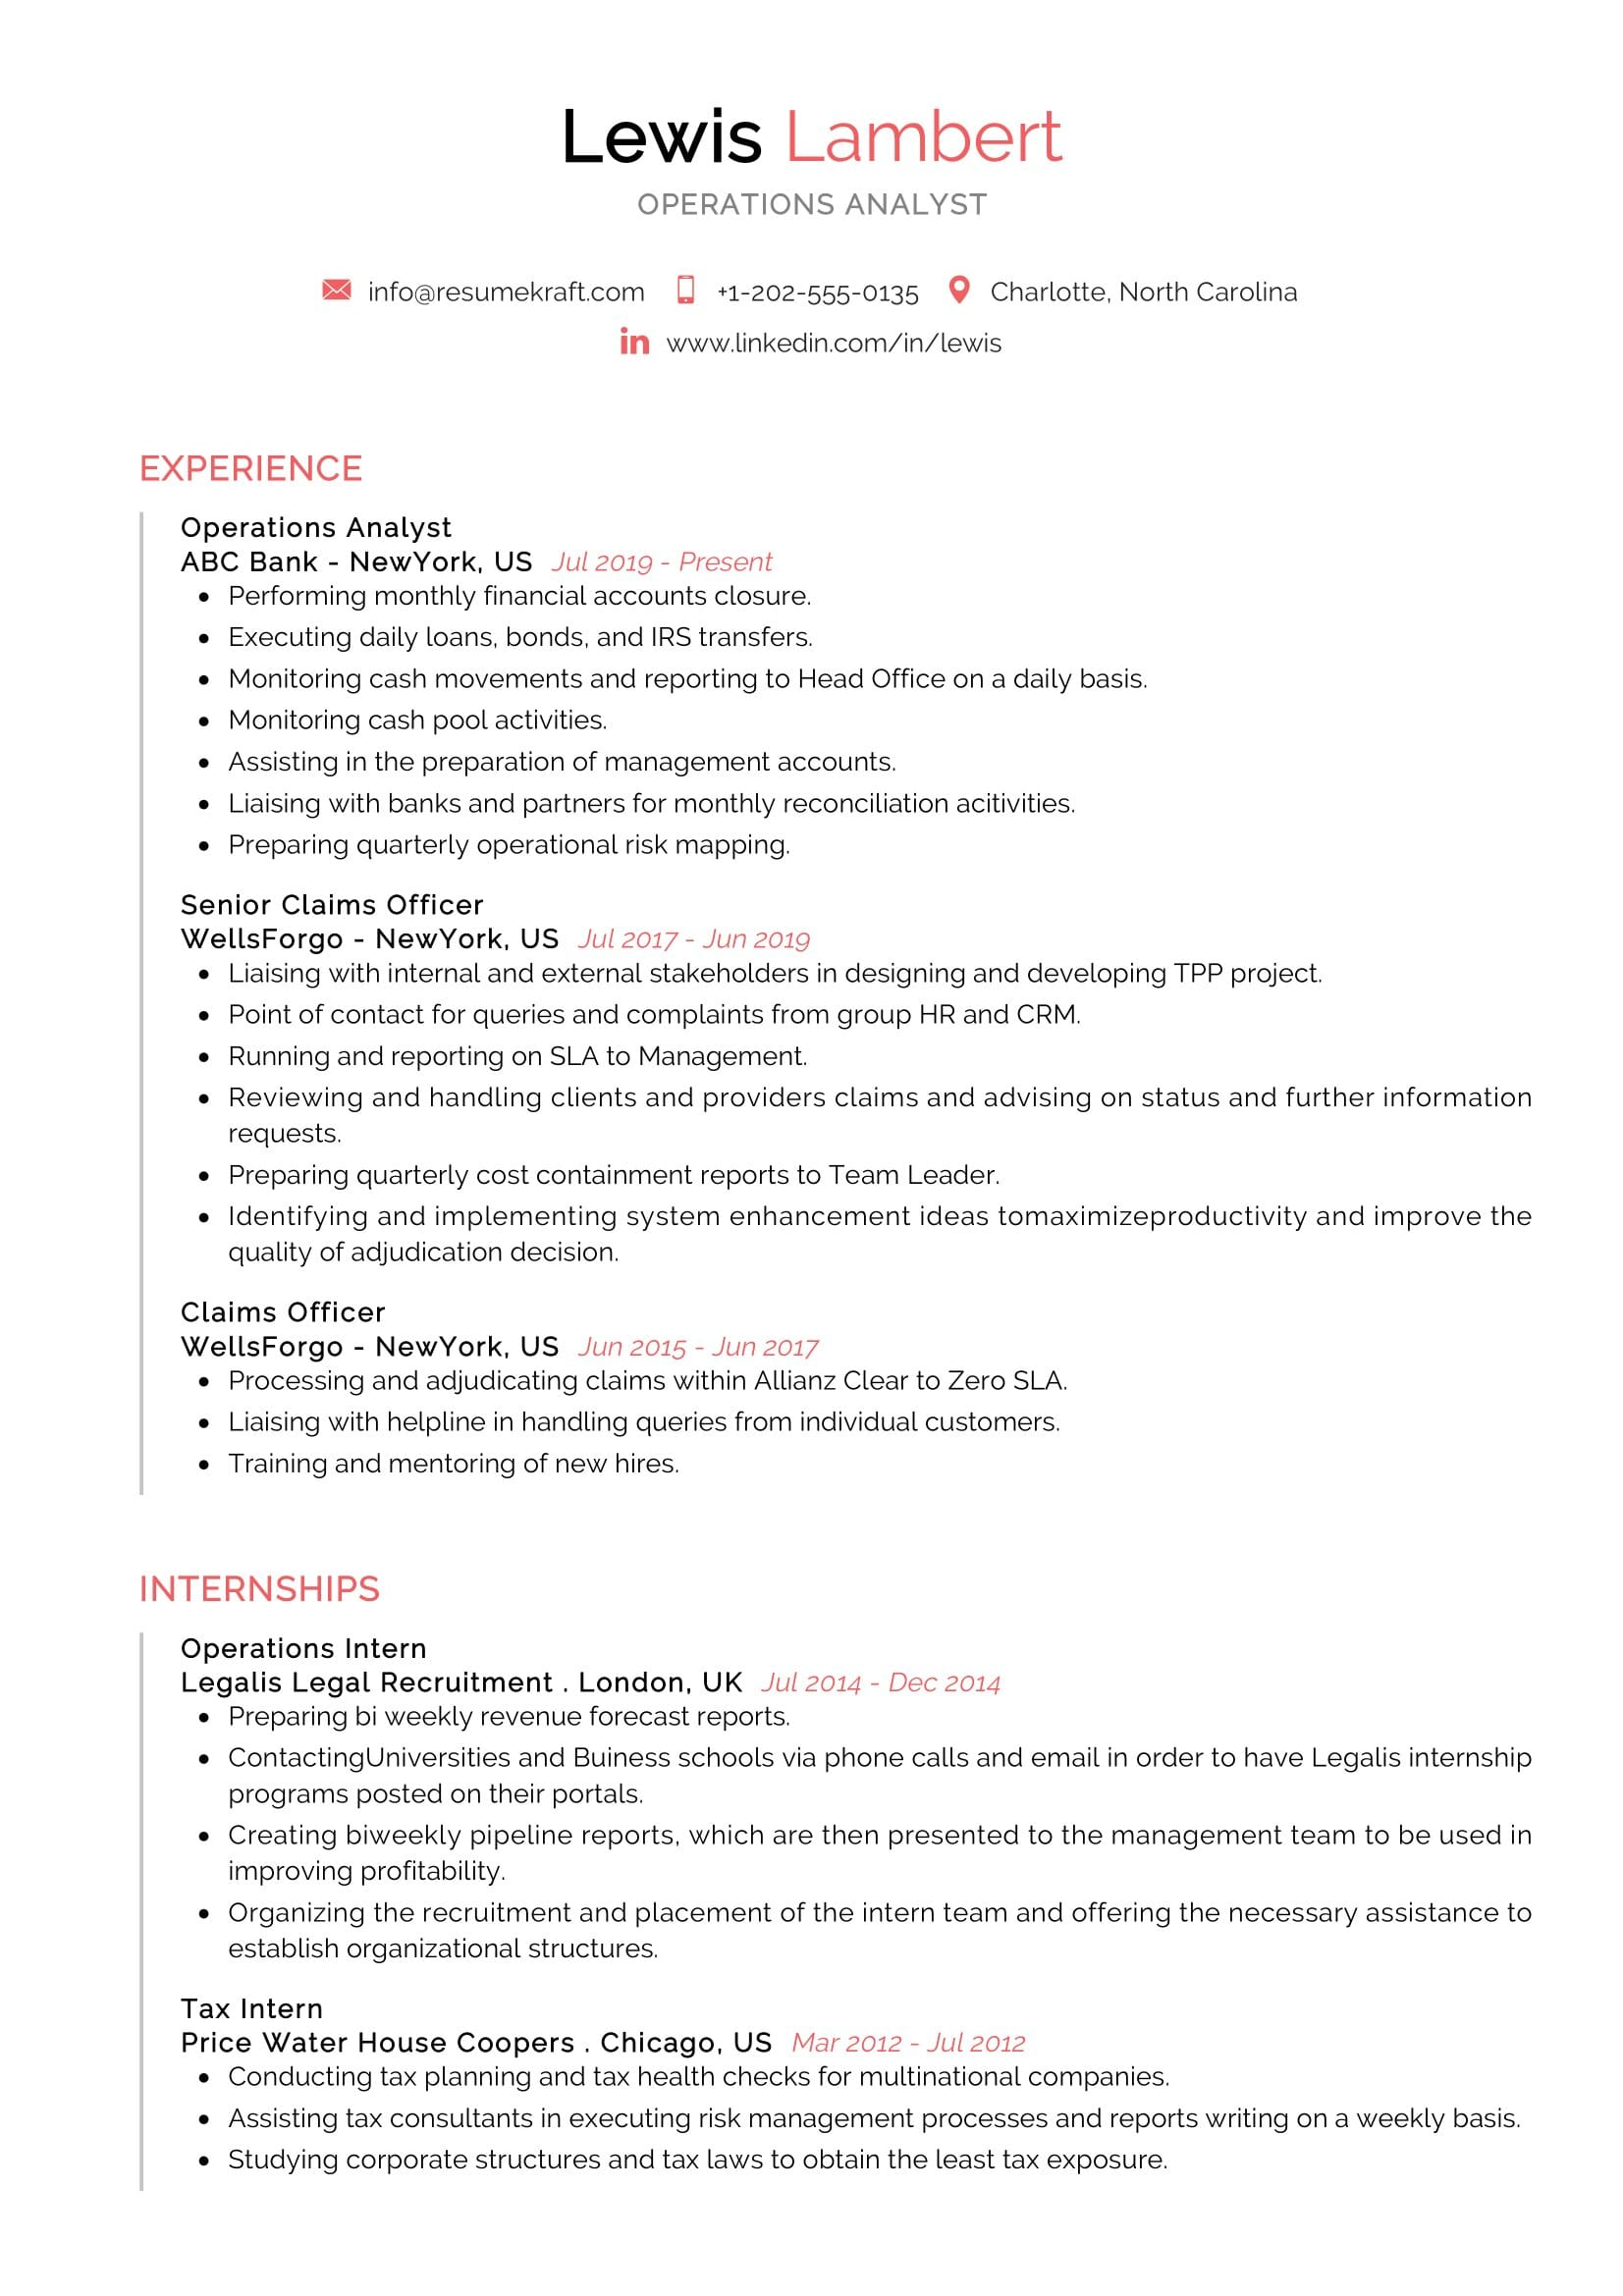 operations analyst resume example resumekraft best softball player template avon Resume Best Operations Analyst Resume